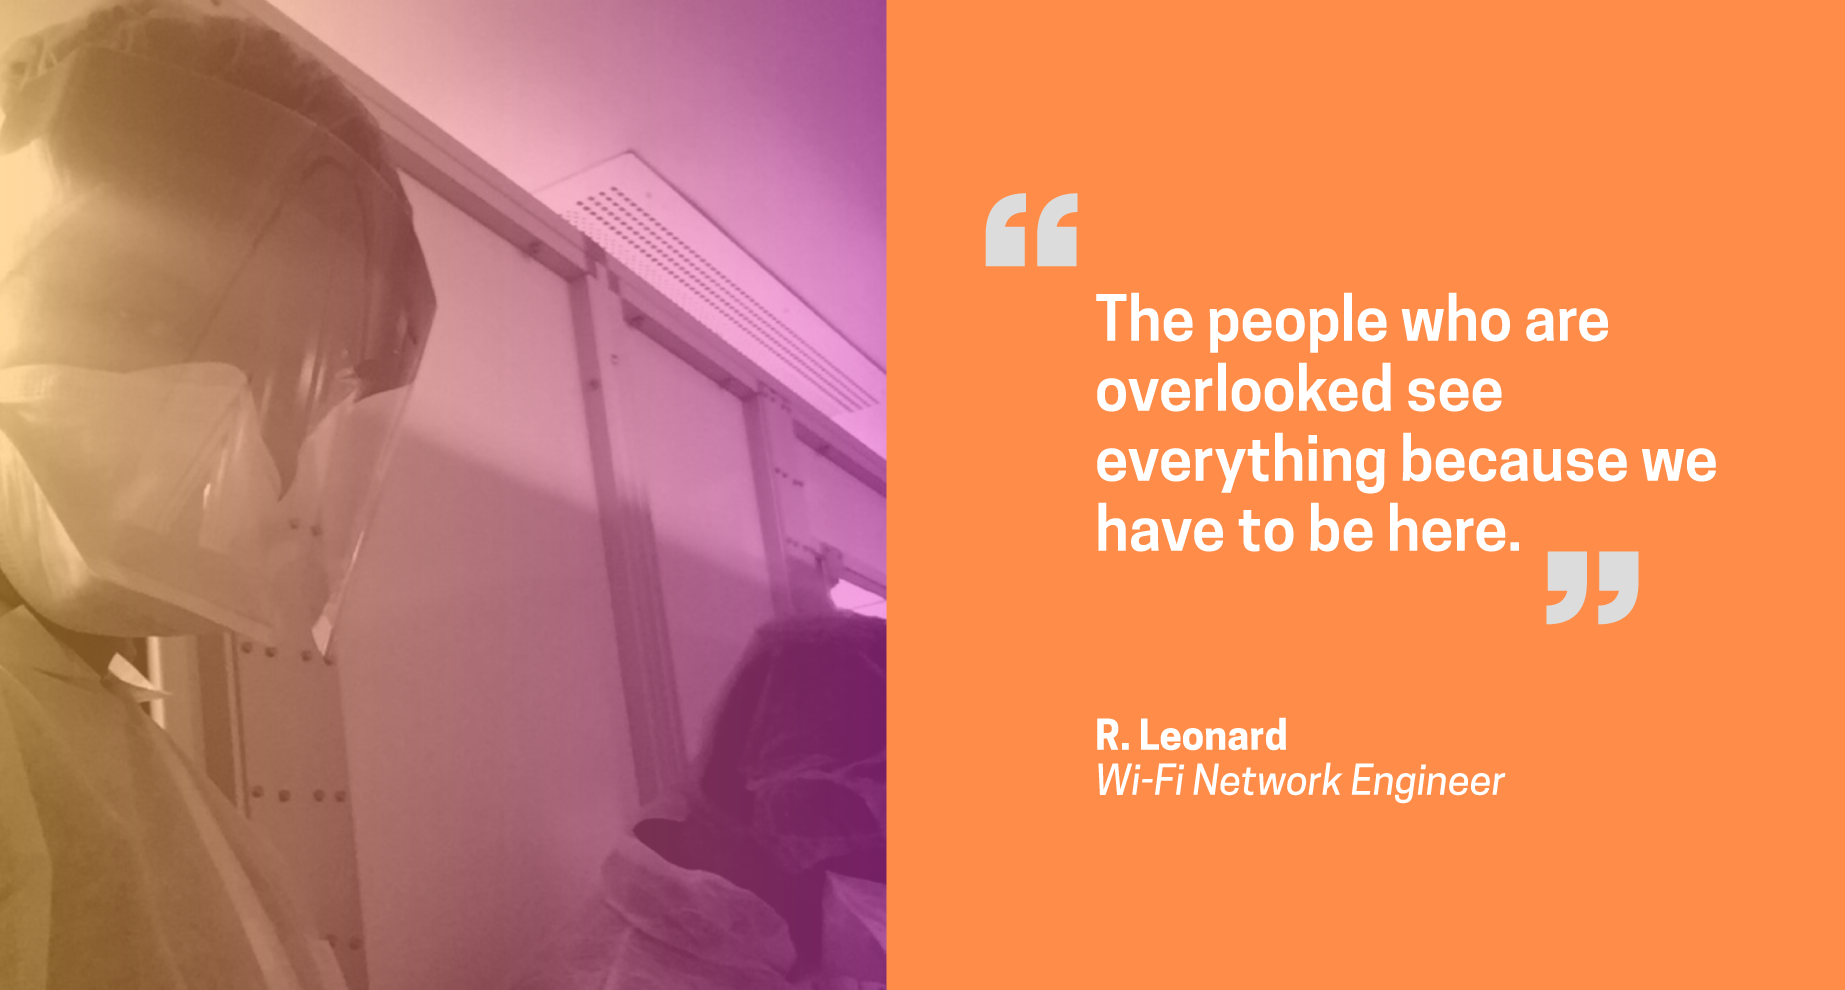 Quote from R. Leonard, network engineer: The people who are overlooked see everything because we have to be here.